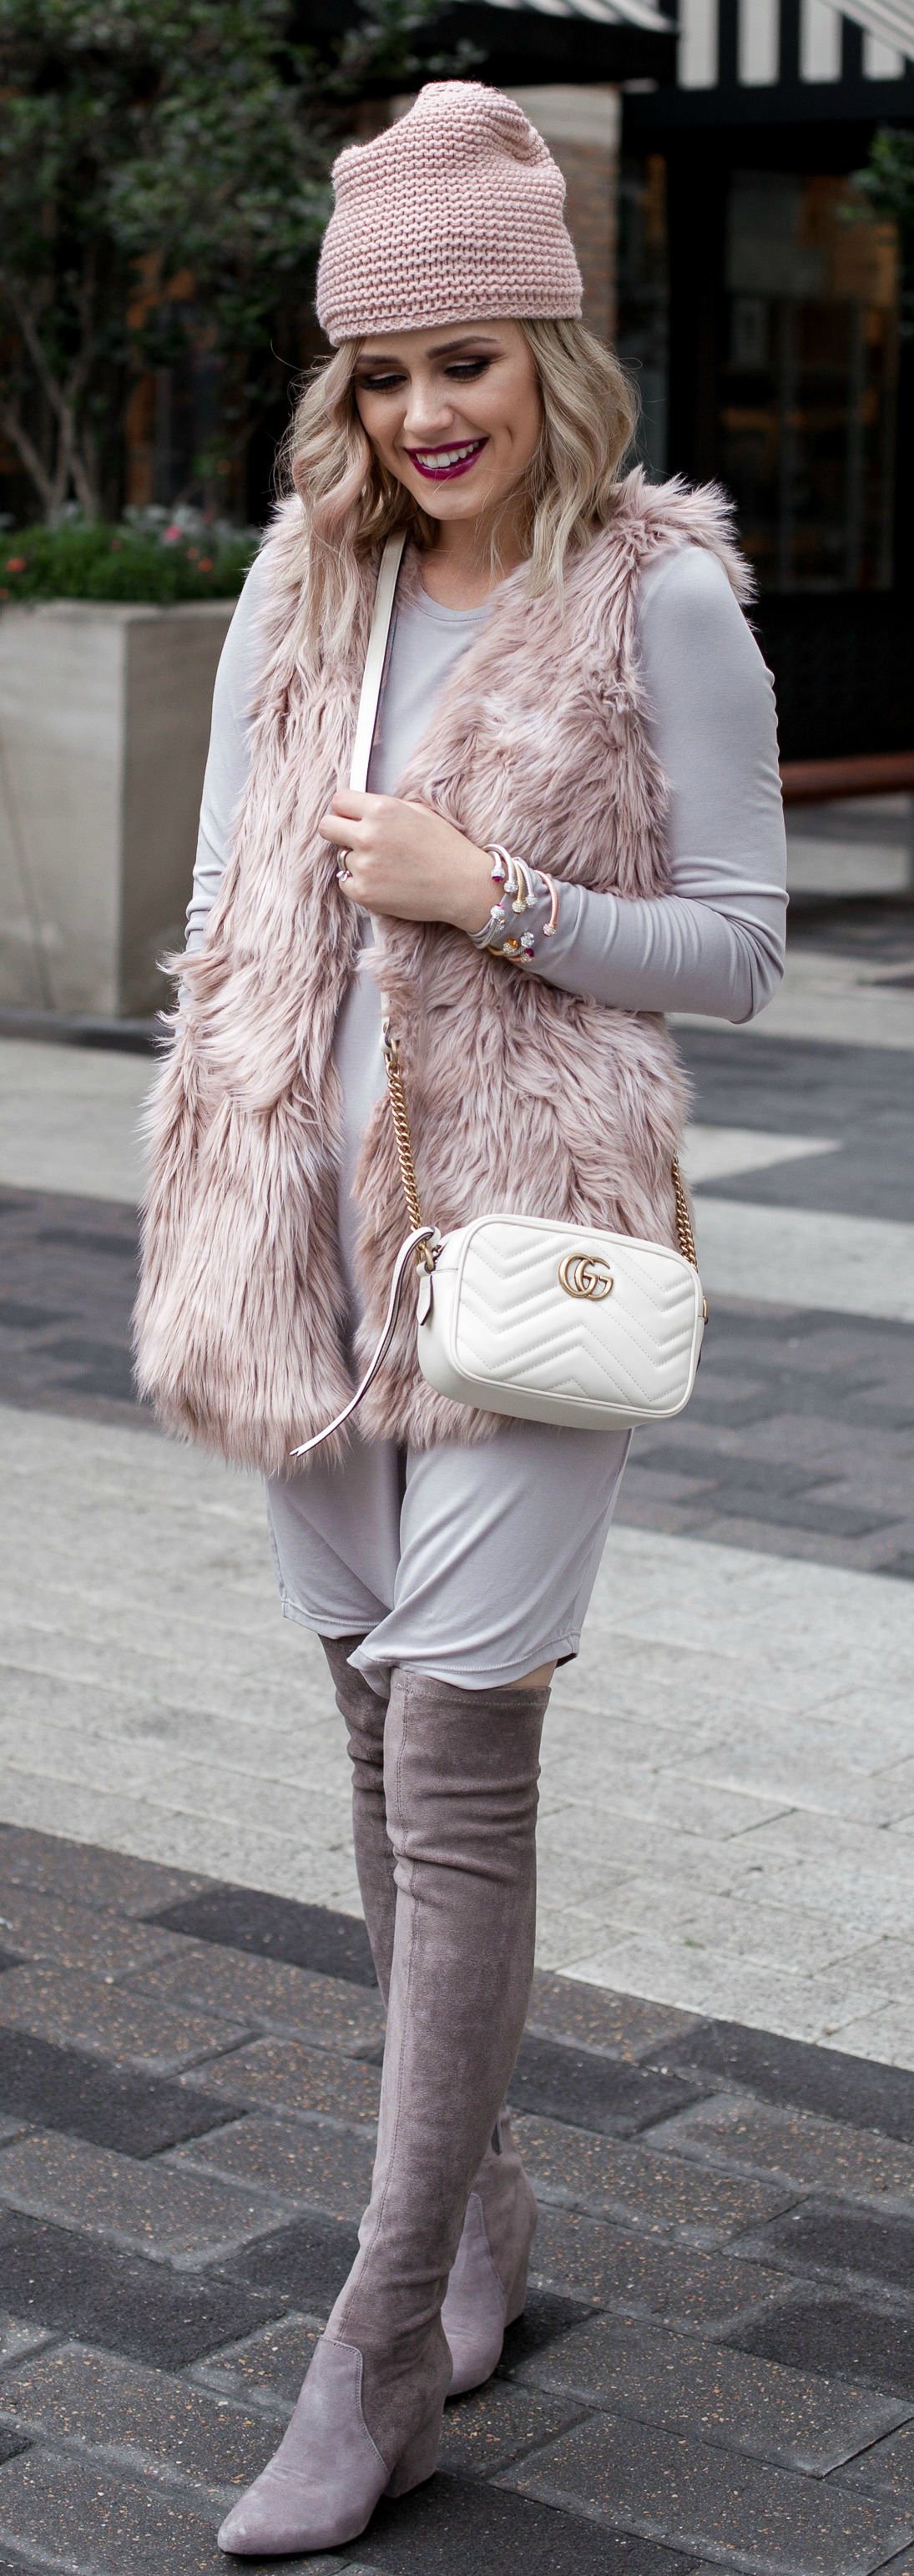 Faux fur vest outfit | winter outfit | chic outfit | OTK boots with dress | Uptown with Elly Brown